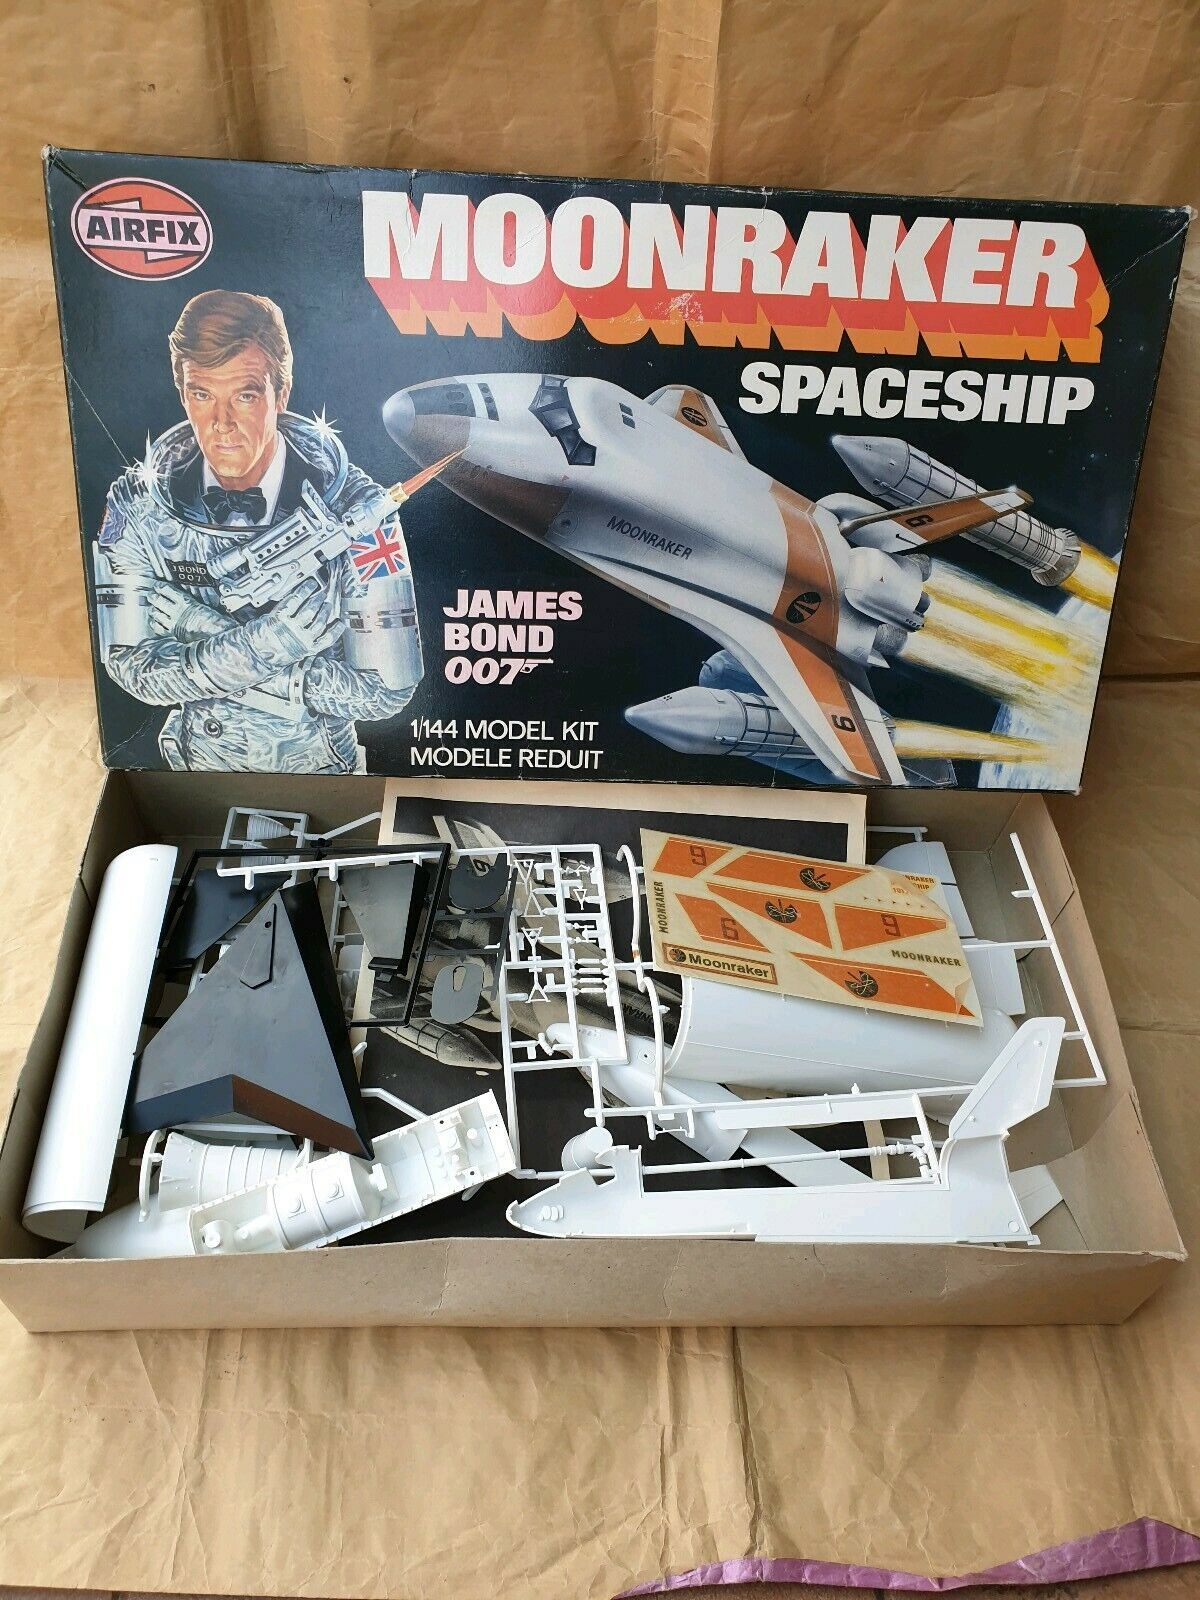 Airfix Moonraker Spaceship James Bond 007 1 144 Model Kit Vintage